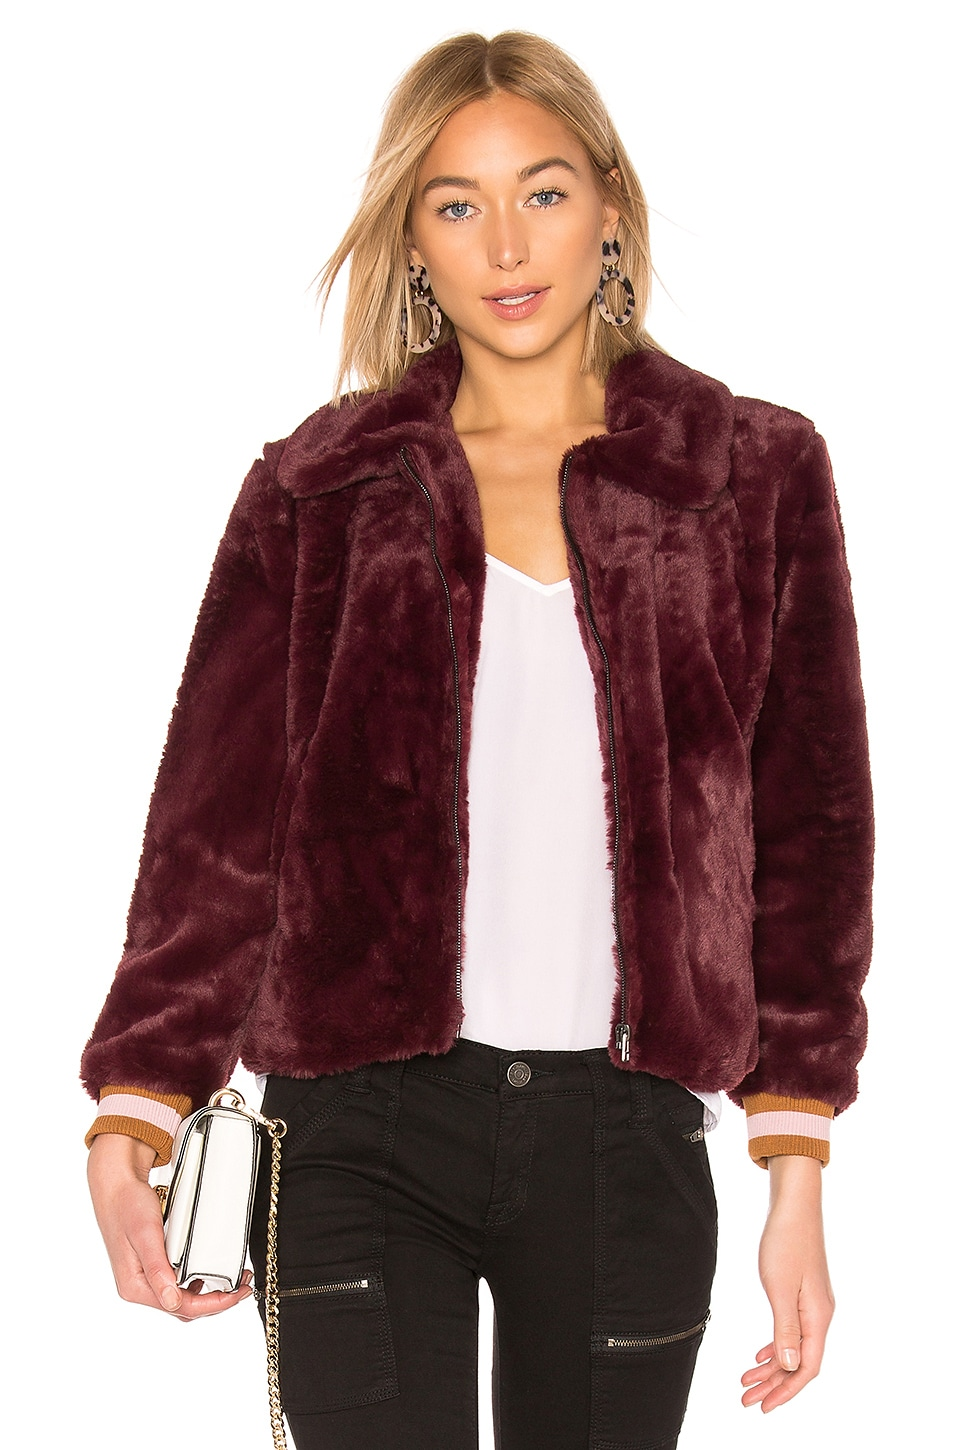 J.O.A. Faux Fur Bomber Jacket in Wine